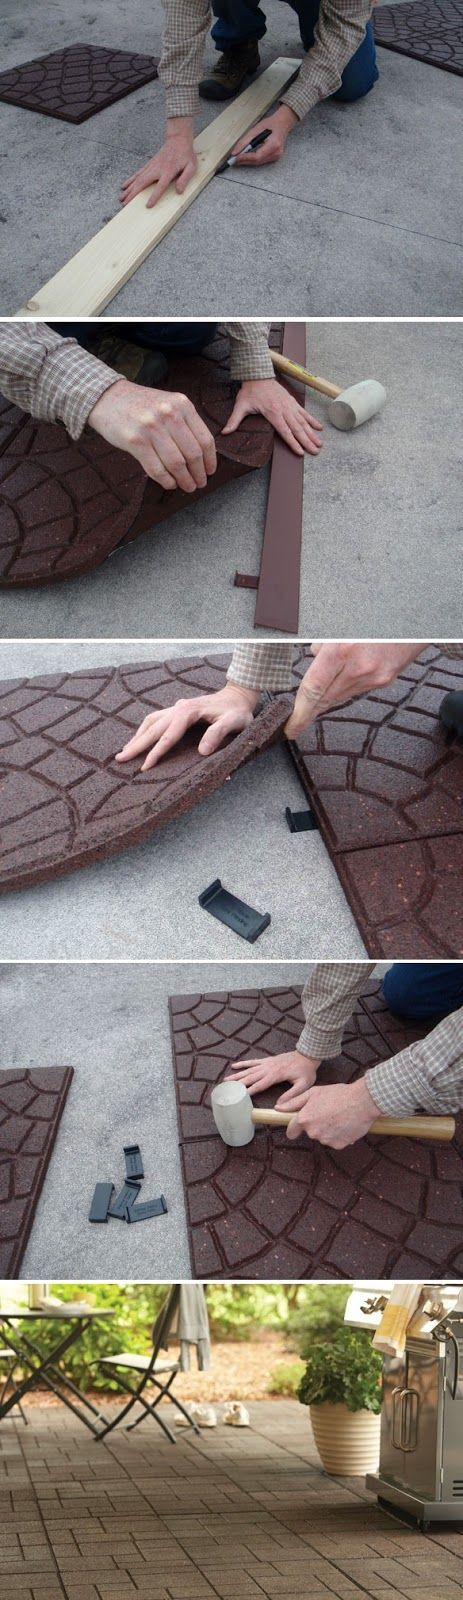 Decorative Patio Tiles Interesting How To Recover Your Patio With Envirotile  Diy Home Decor Review